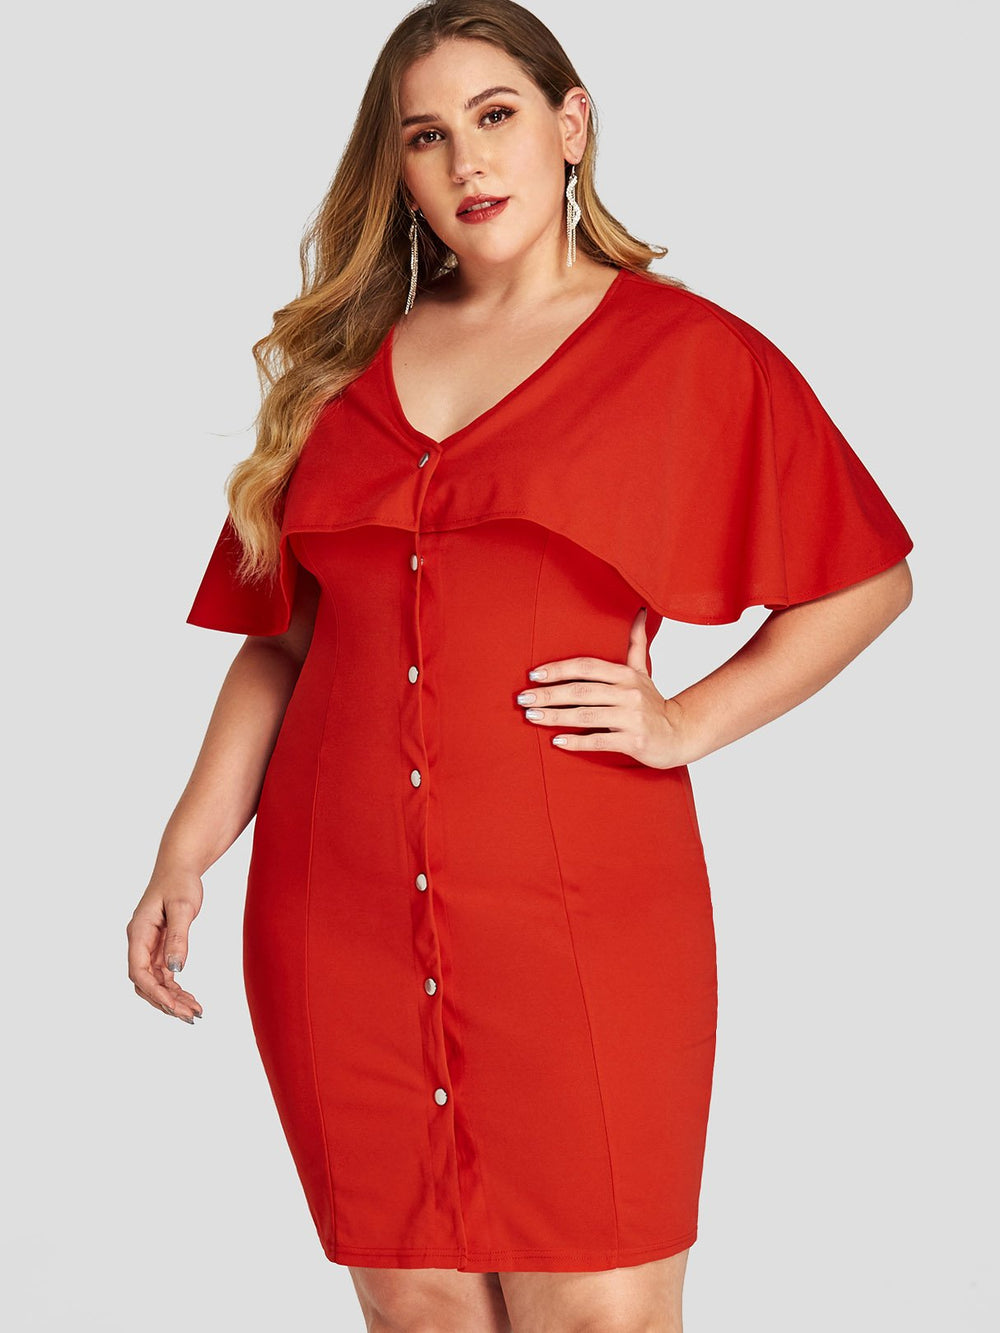 Women's Plus Size White Summer Dresses